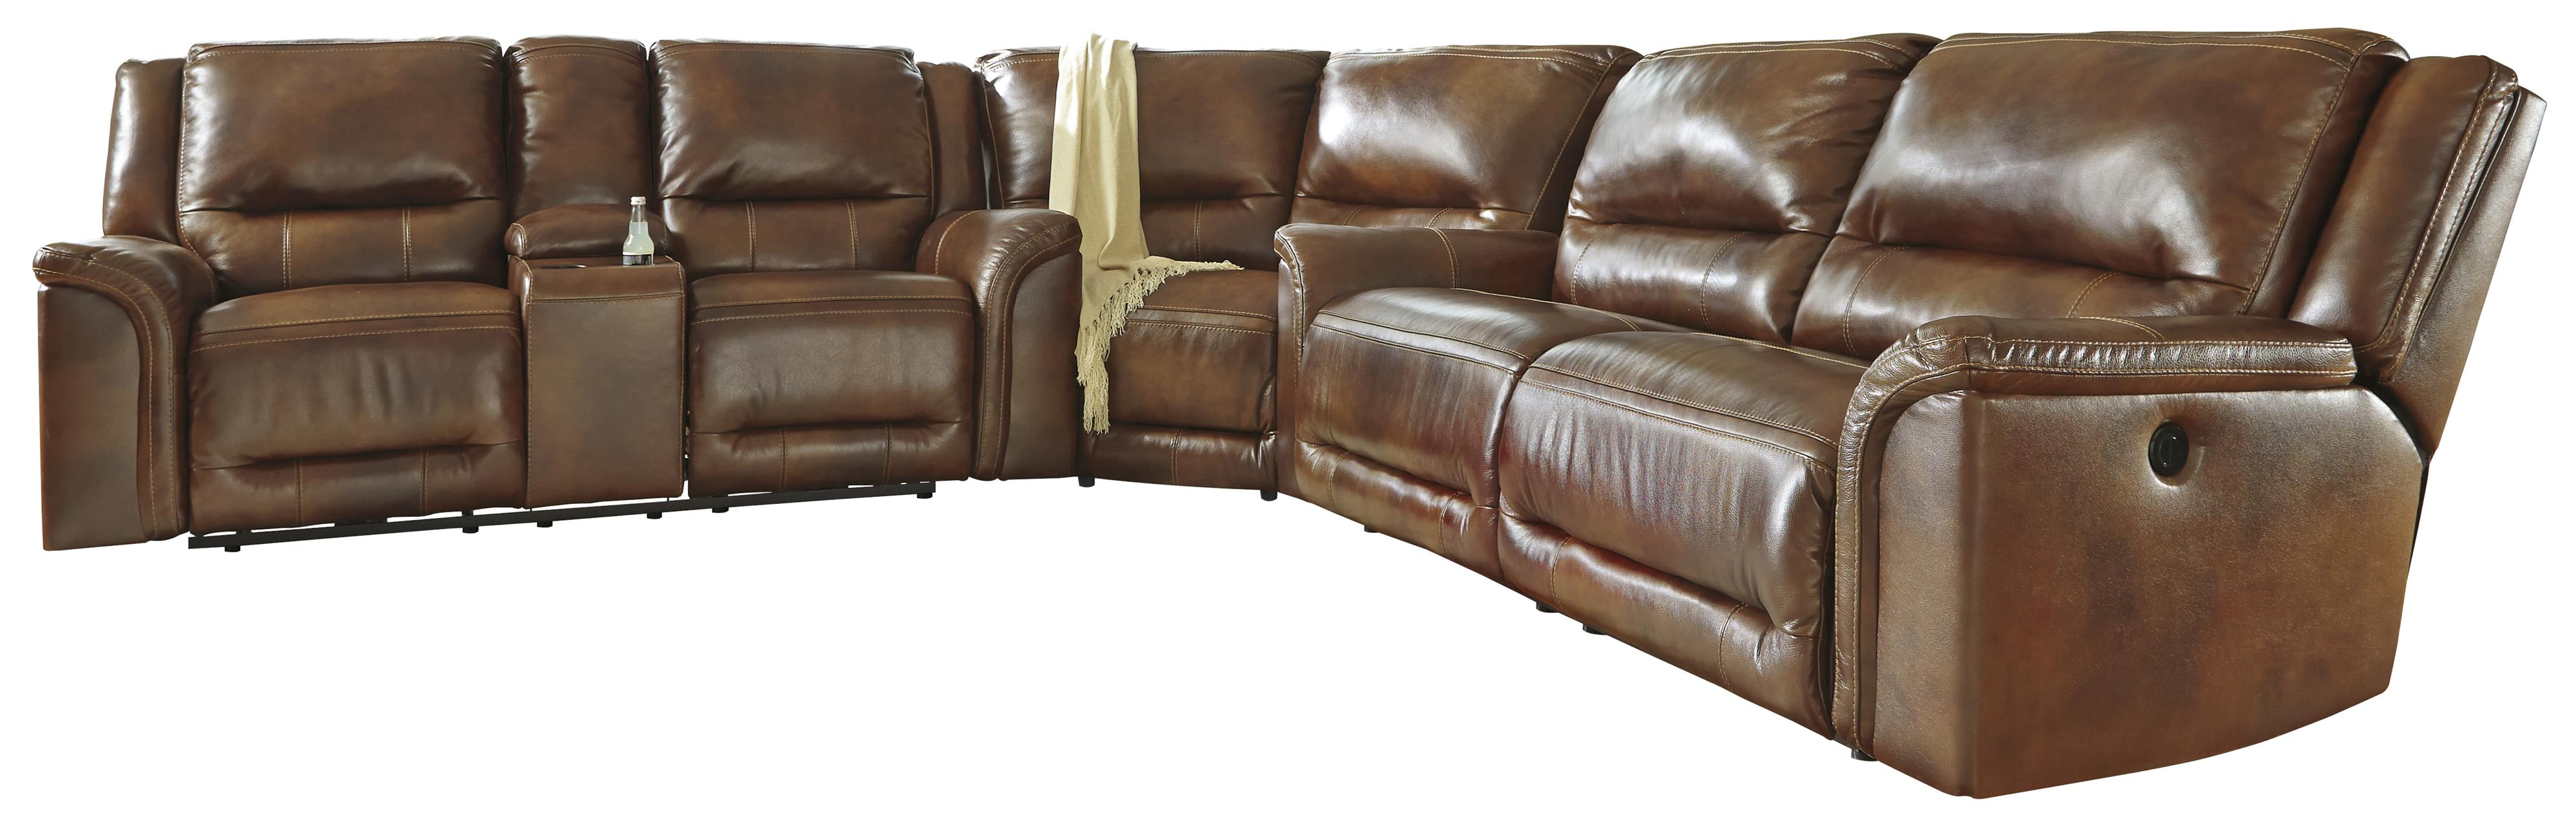 Signature Design by Ashley Jayron Reclining Sectional with Wedge - Item Number: U7660094+77+81